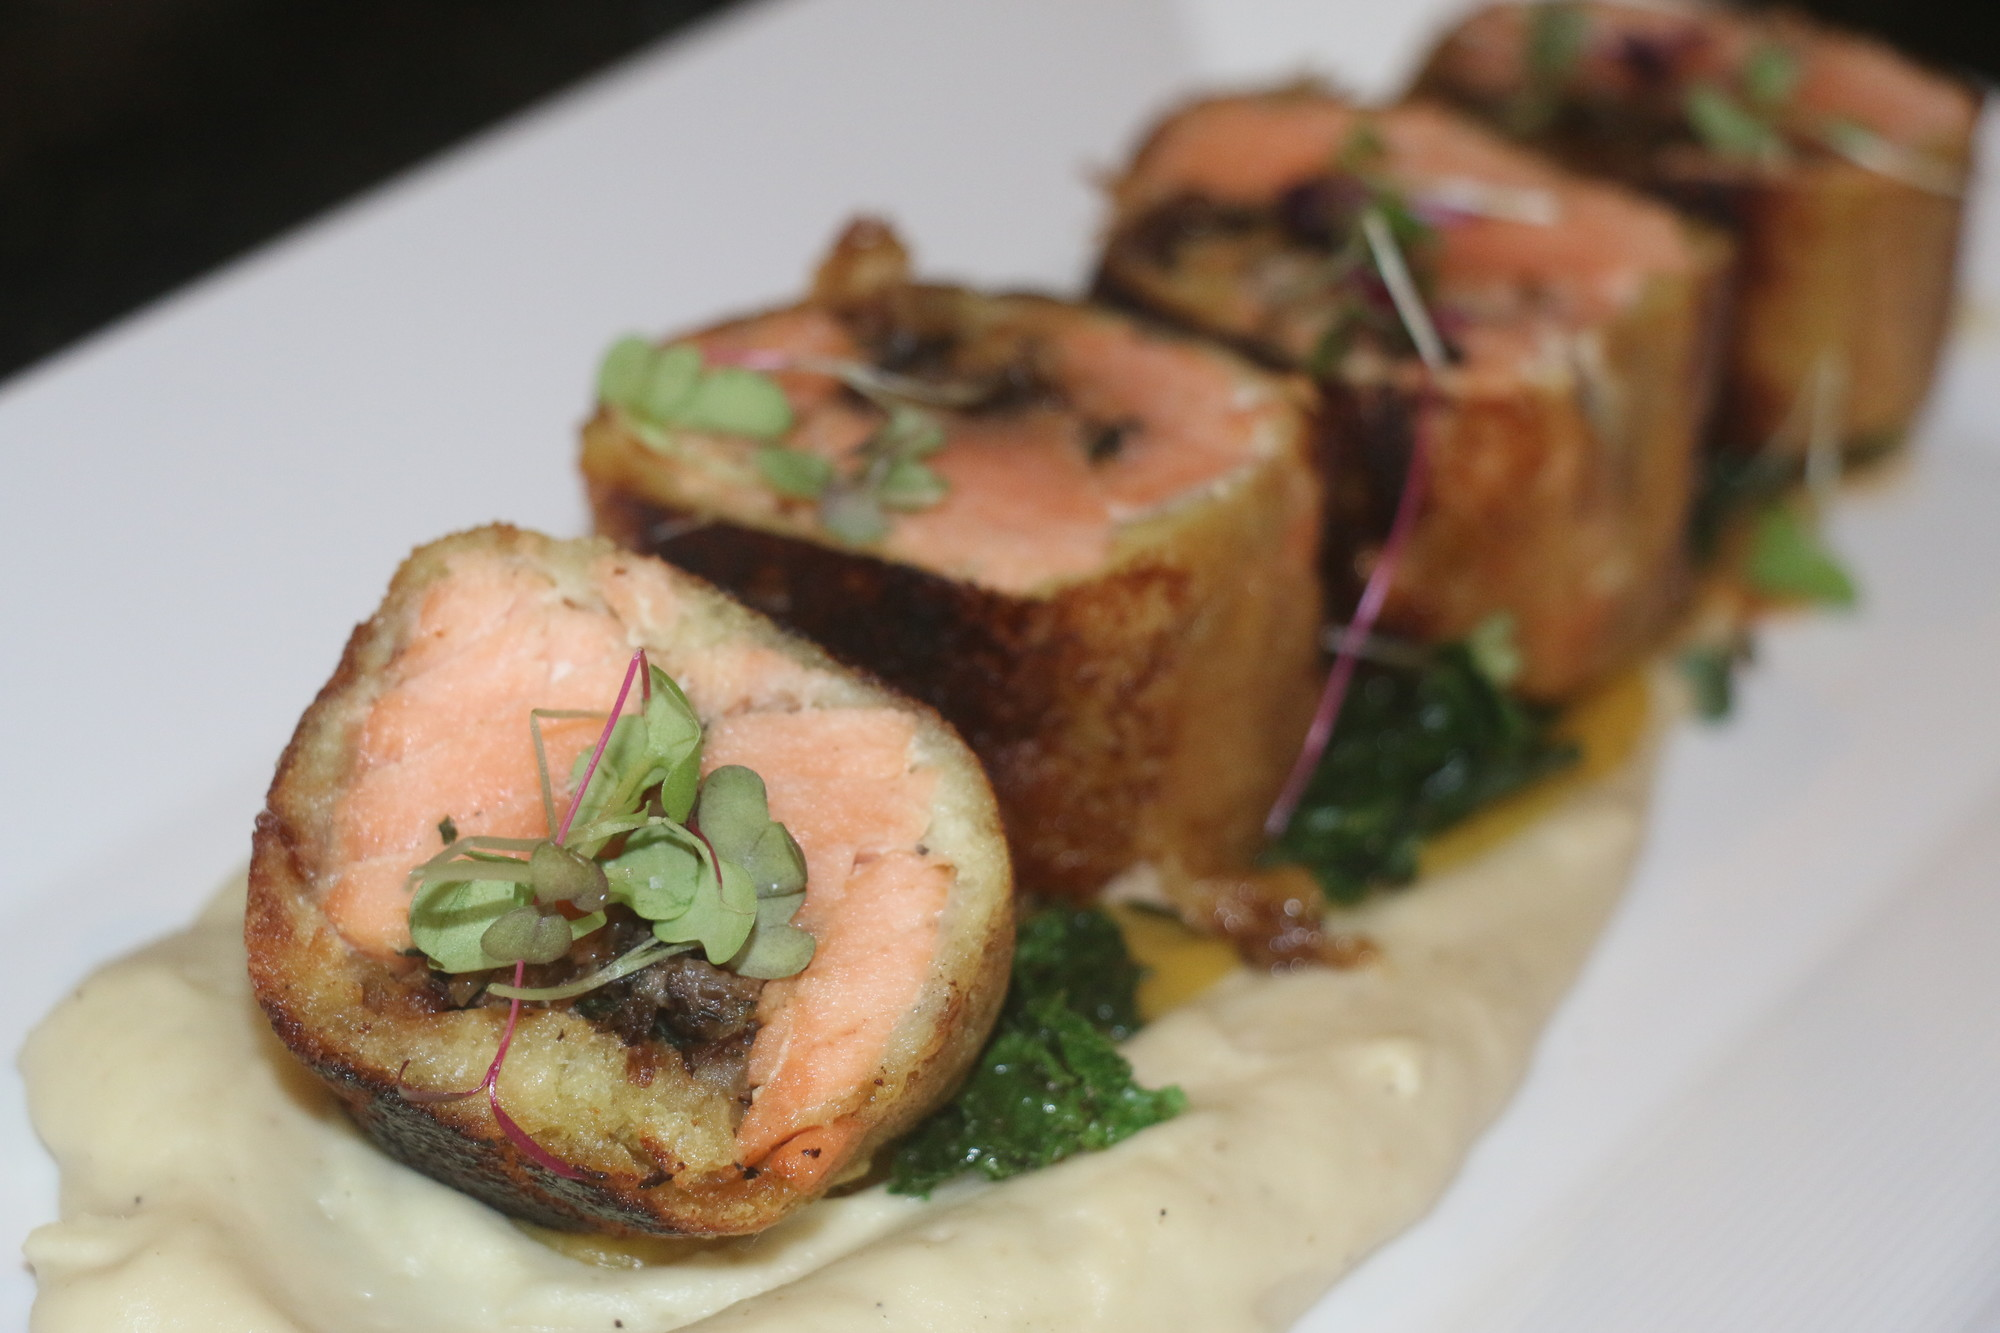 Brioche-wrapped salmon and wild mushrooms glazed with honey Dijon mustard is one of Jallad's signature dishes.